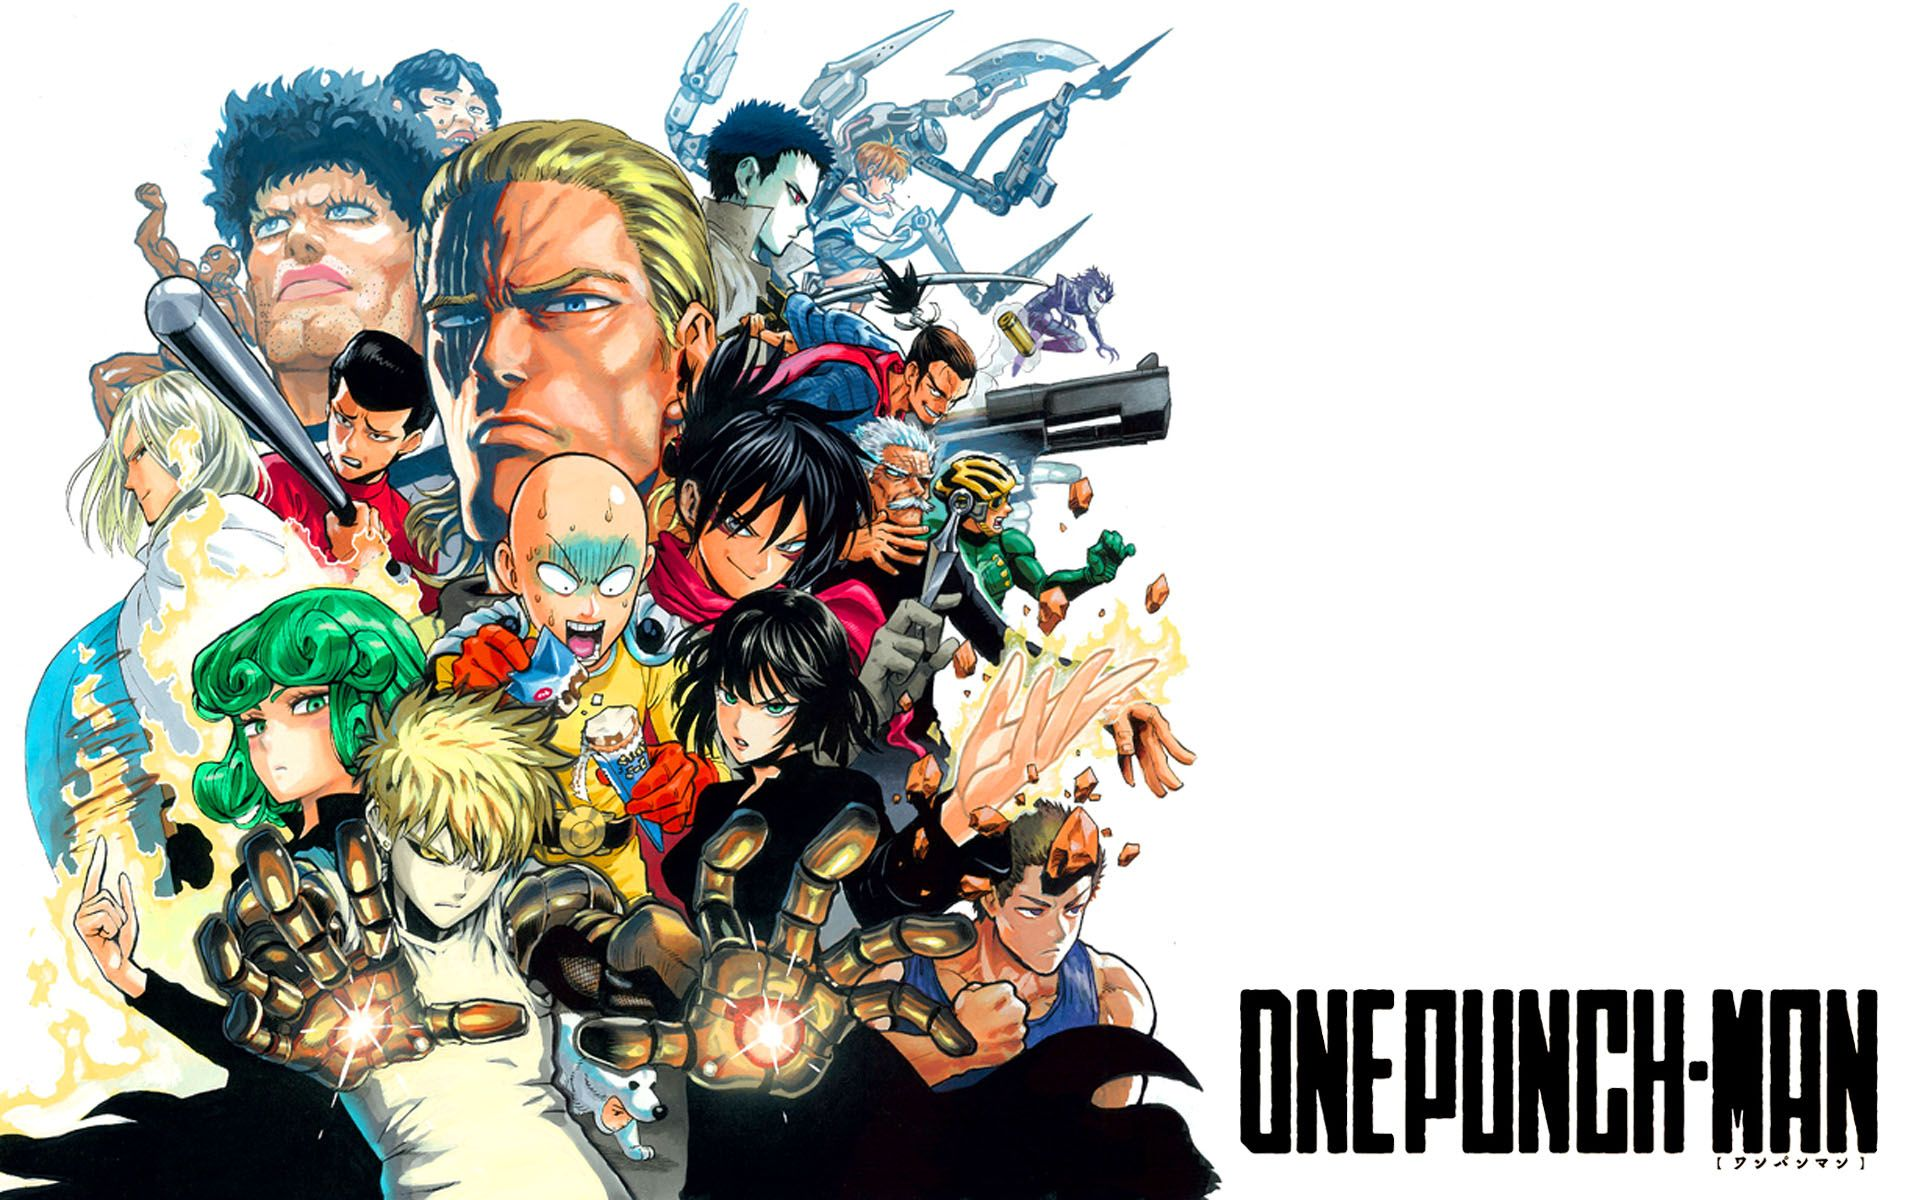 One Punch Man Wallpaper Desktop Anime Wallpaper In 2020 One Punch Man Anime One Punch One Punch Man